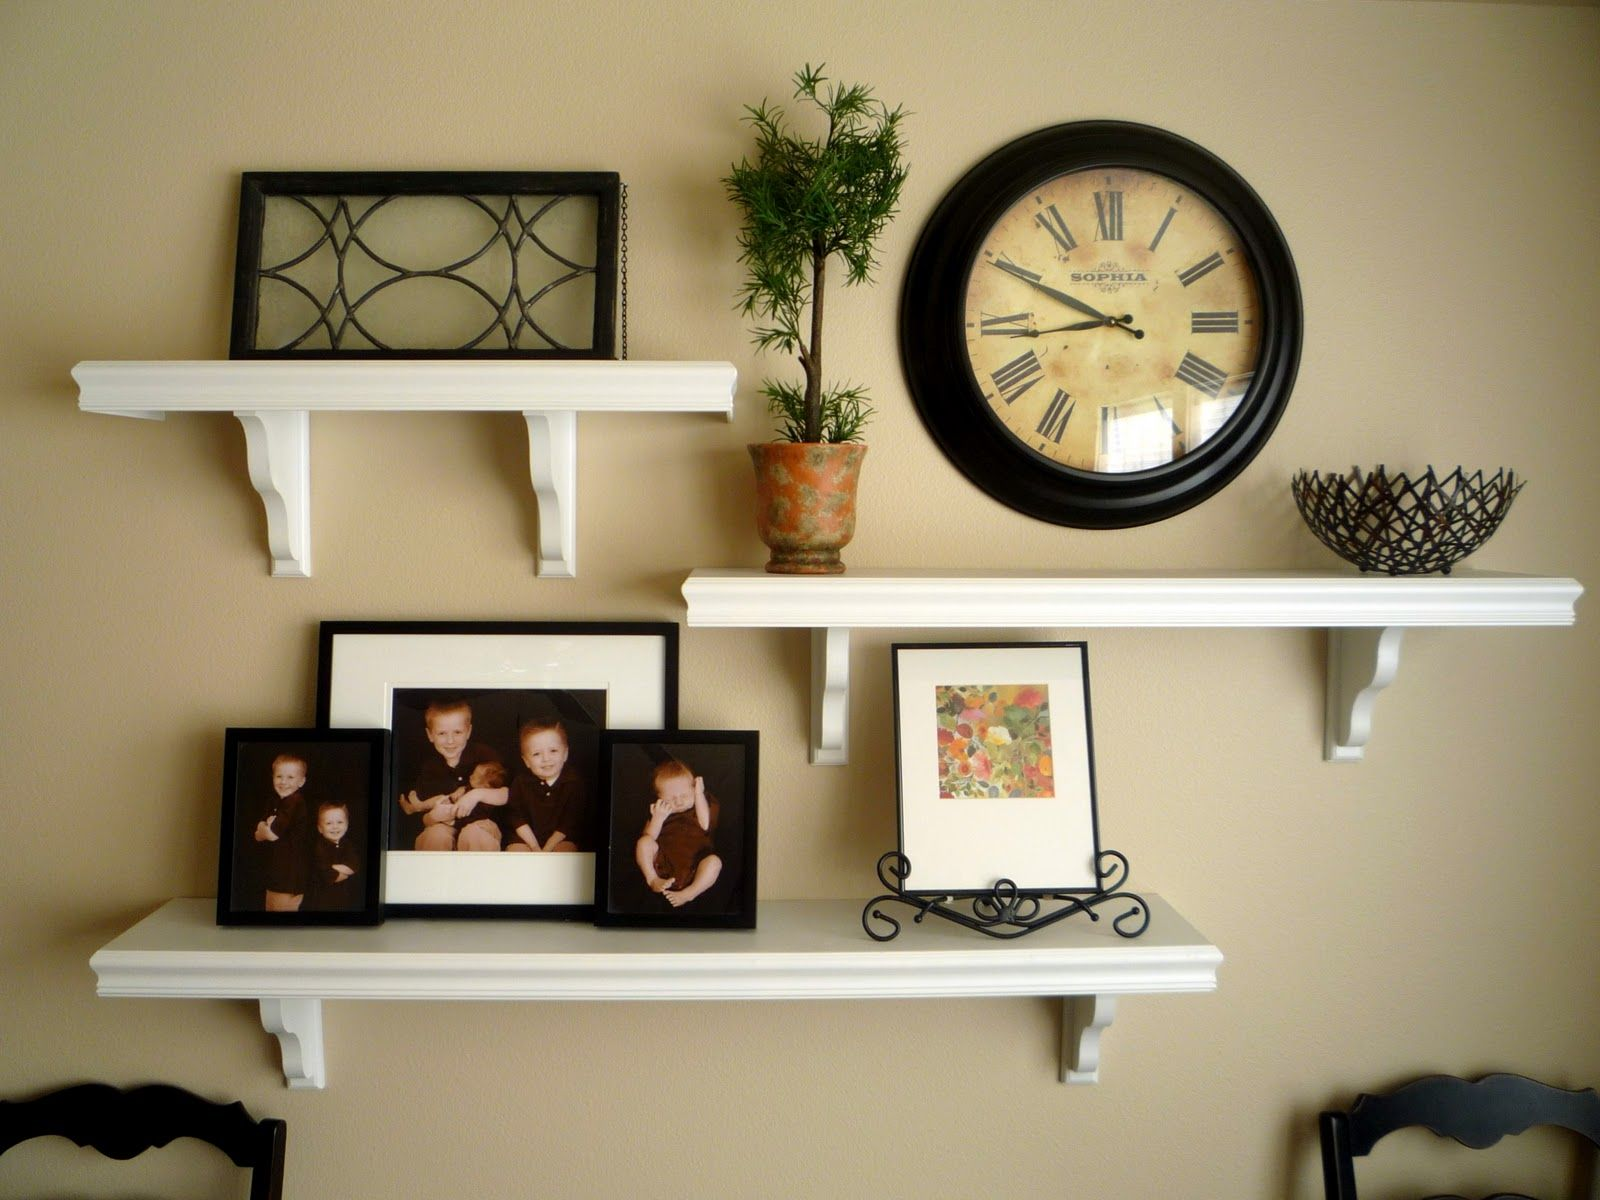 picture and shelves on wall together | it all started after being